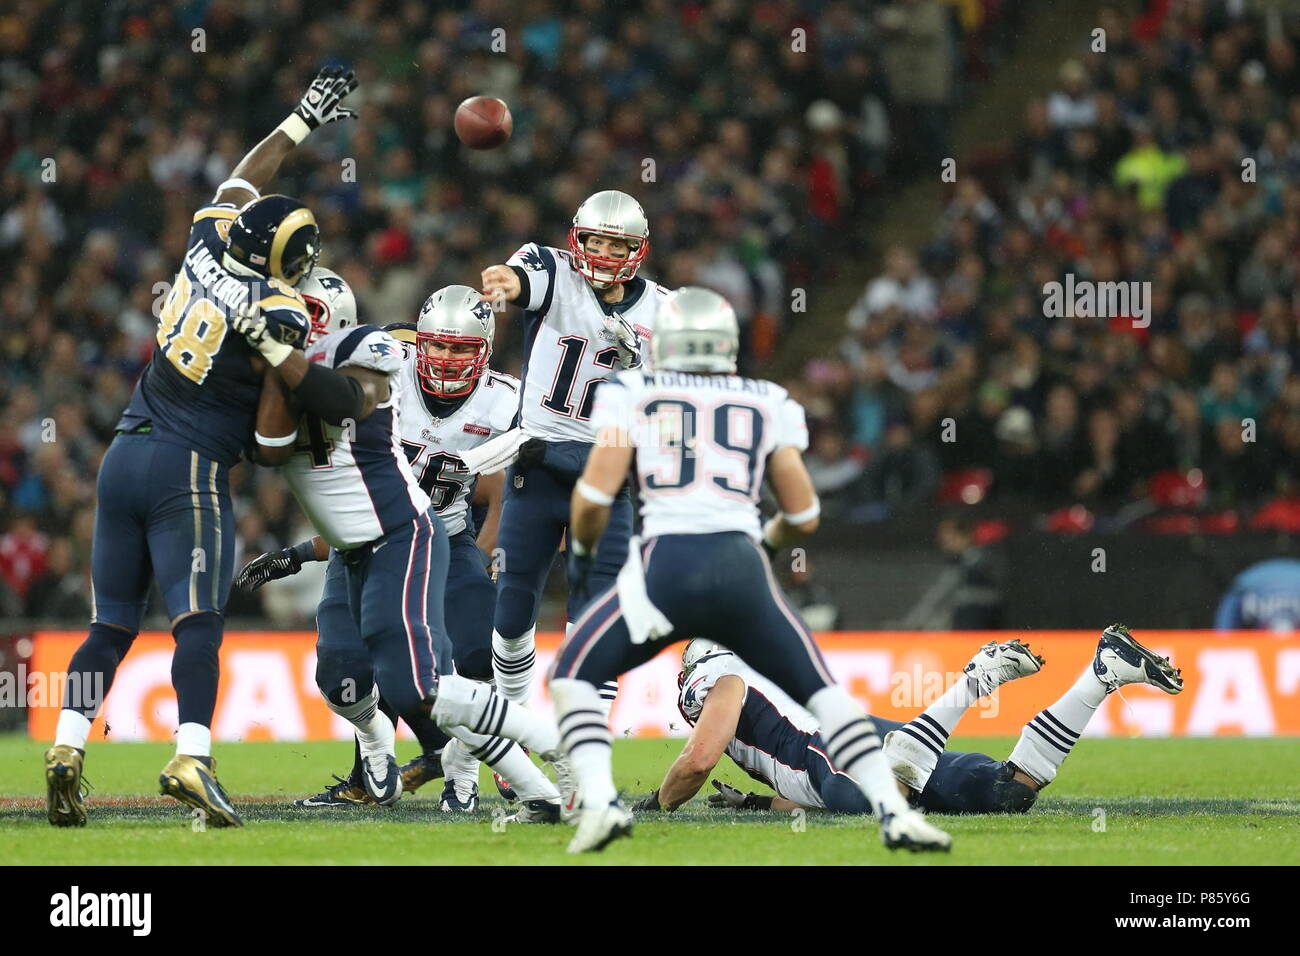 New England Patriots quarterback Tom Brady looks for the pass in the fourth quarter against the St. Louis Rams during the NFL International Series 2012 game at Wembley Stadium 28 October. Tom Brady is the most successful quarterback in NFL history with 6 Superbowl Winners Rings --- Photo by Paul Cunningham - Stock Image